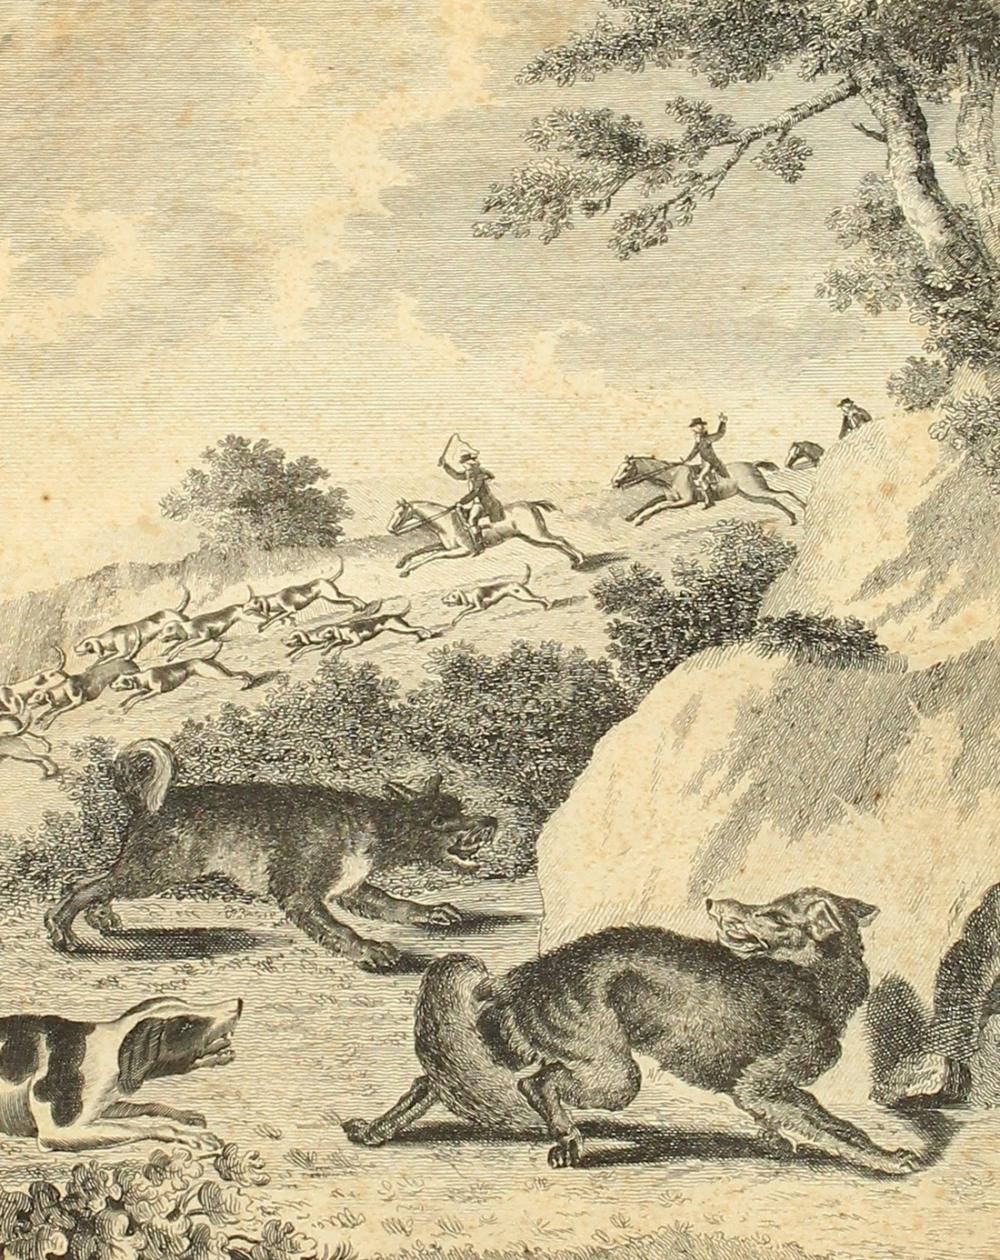 Prattent after Dodd, 'Fox Hunting, the Earth Stopped', 18th Century etching, signed in ink in the top right-ha